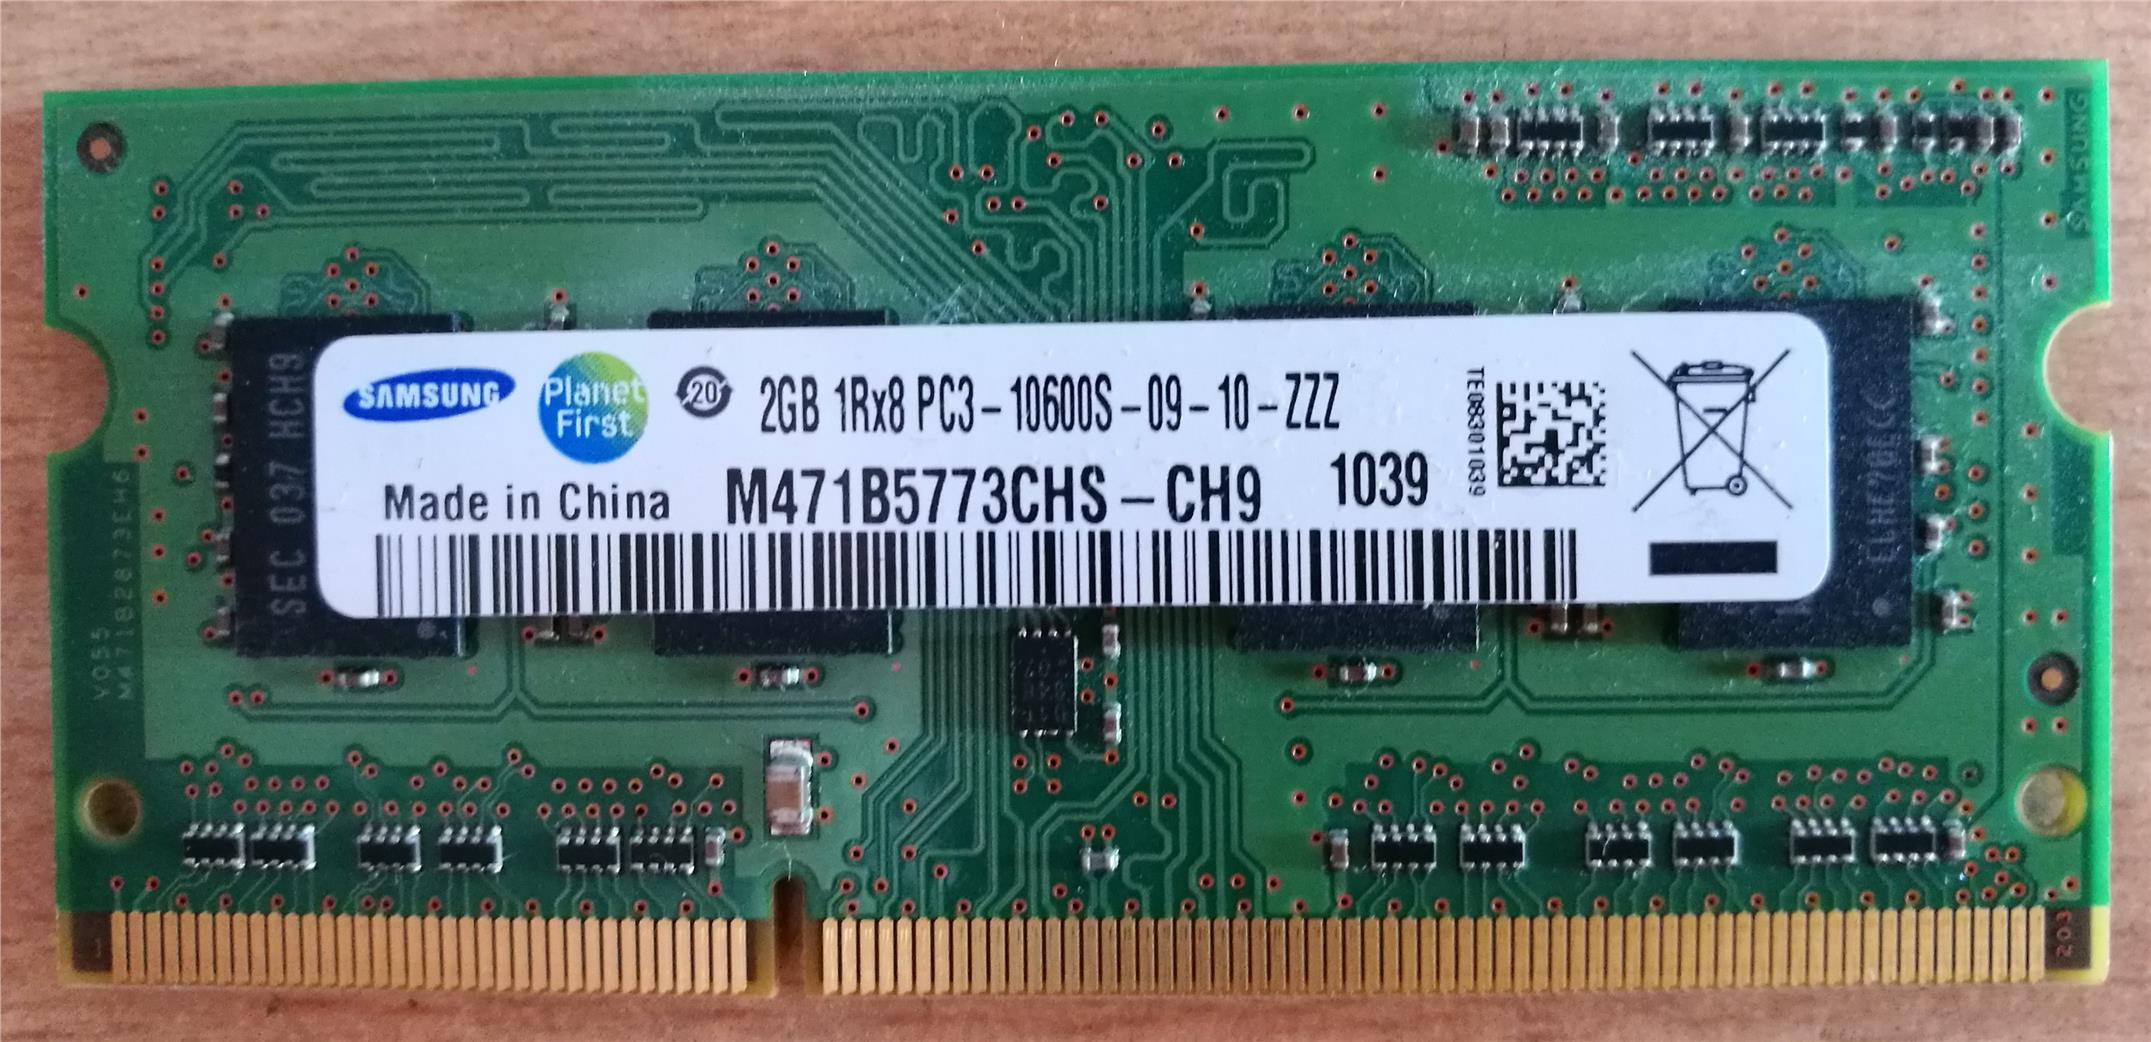 Samsung 2GB DDR3 1333MHZ NOTEBOOK LAPTOP RAM CLEAR STOCK PRICE